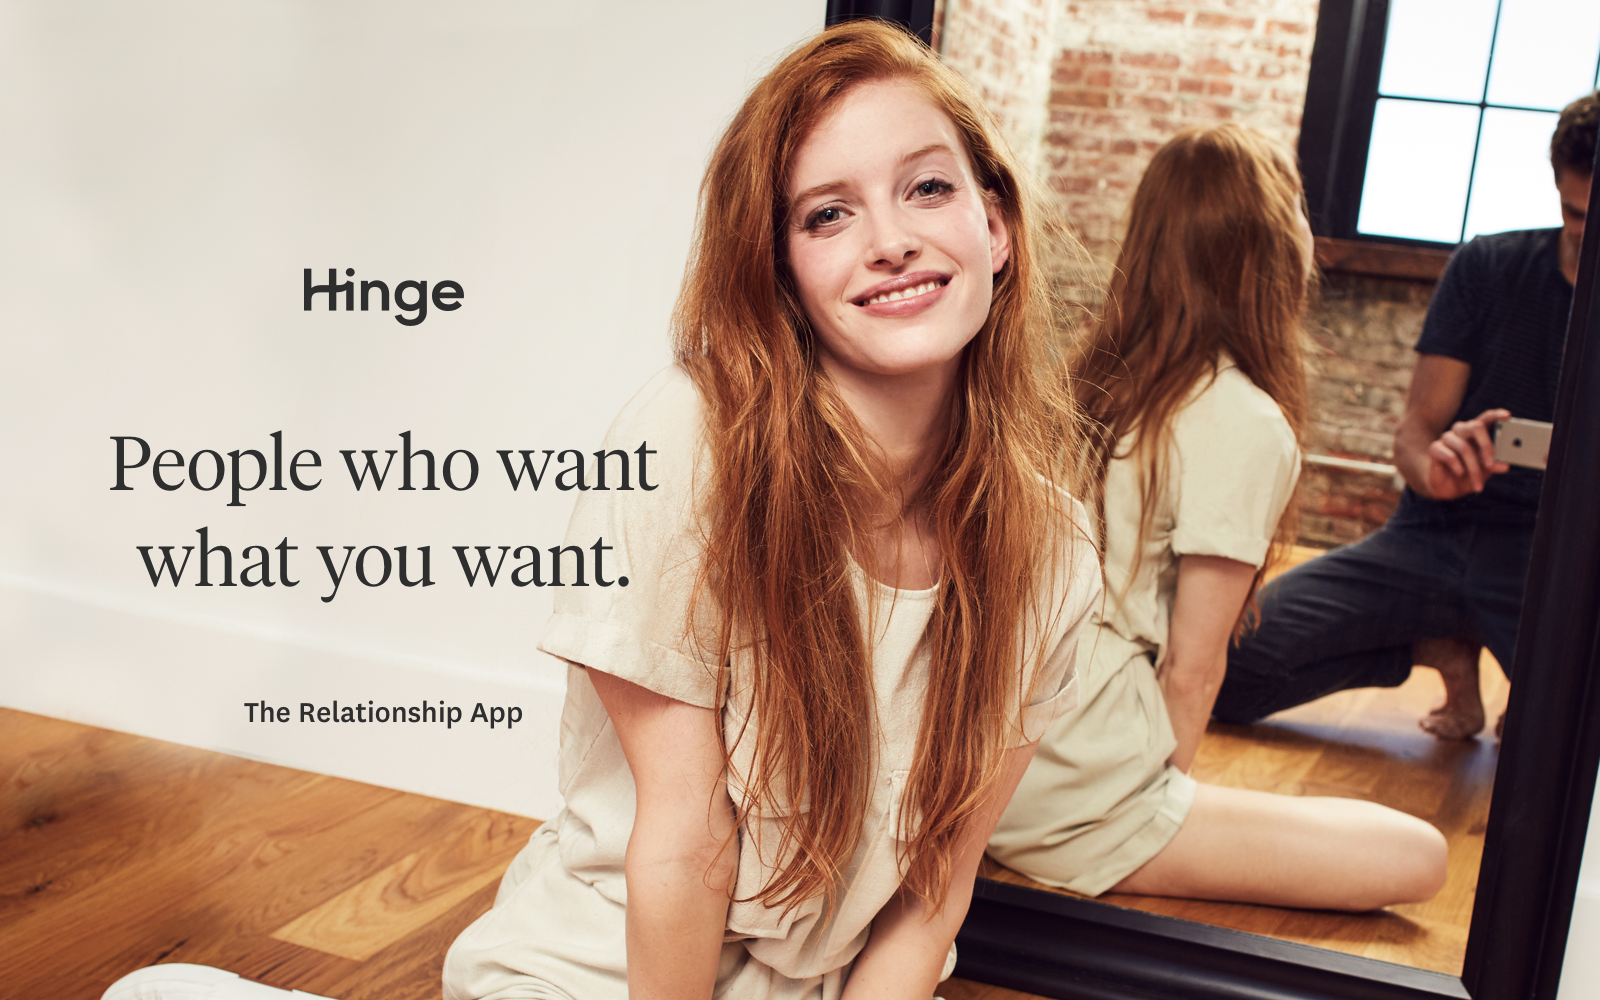 Hinge's new ad campaign promises people who are seriously looking for relationships, for $7 a month.